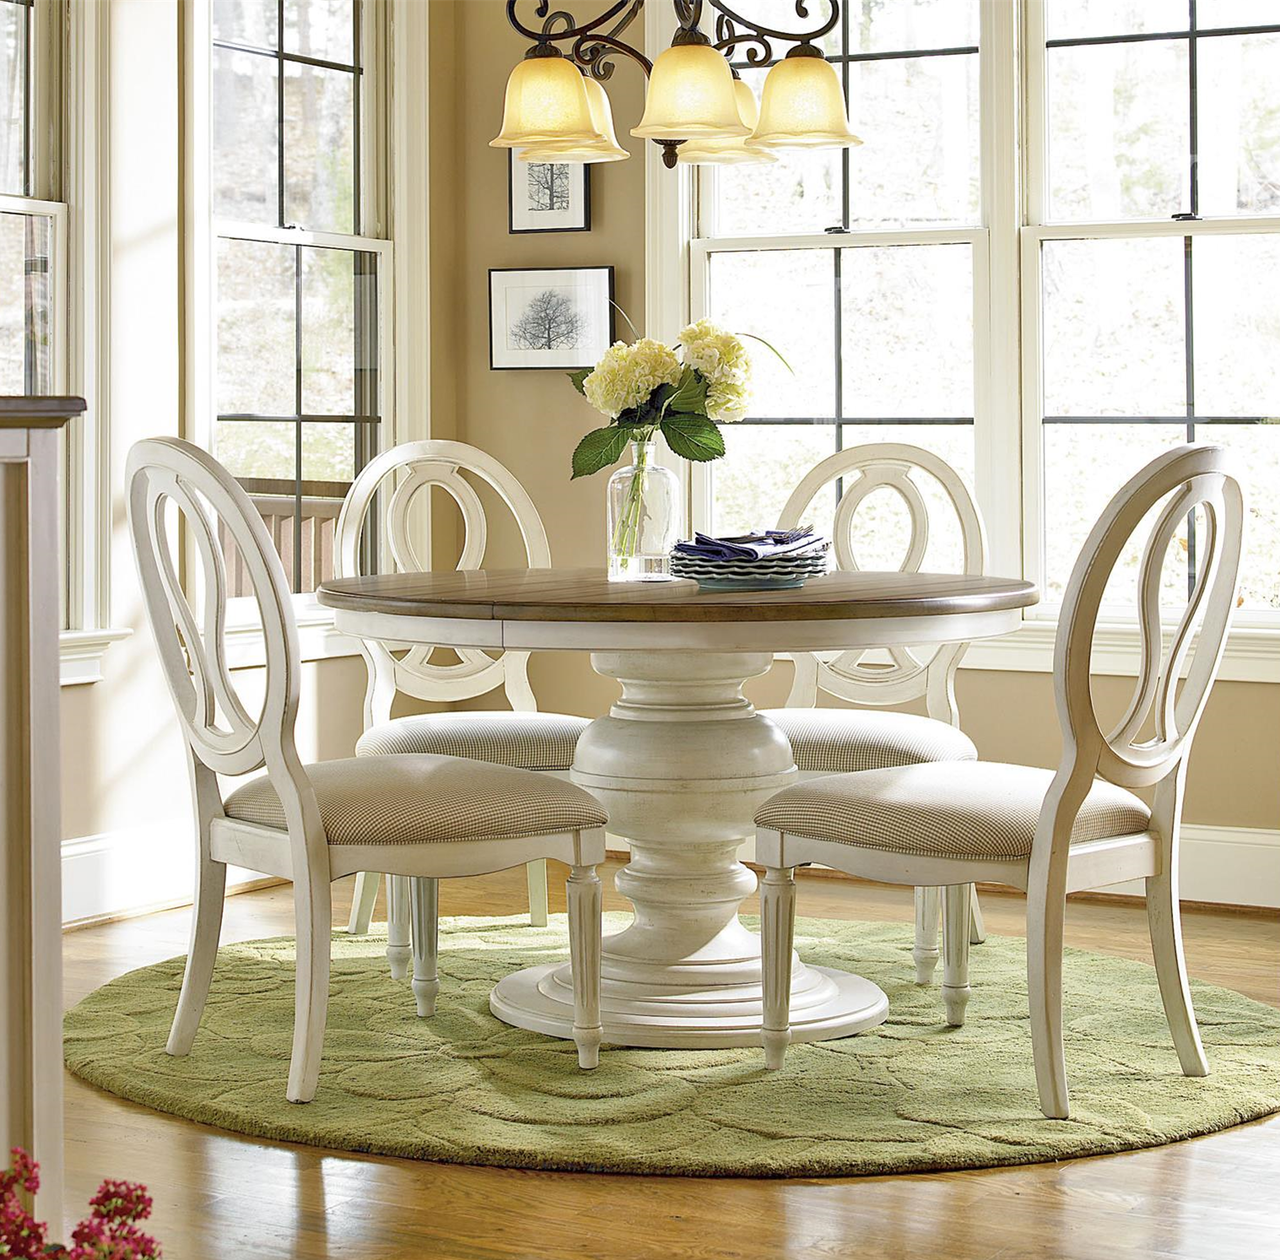 Dining Set Round Table: Country-Chic 5 Piece Round White Dining Table Set